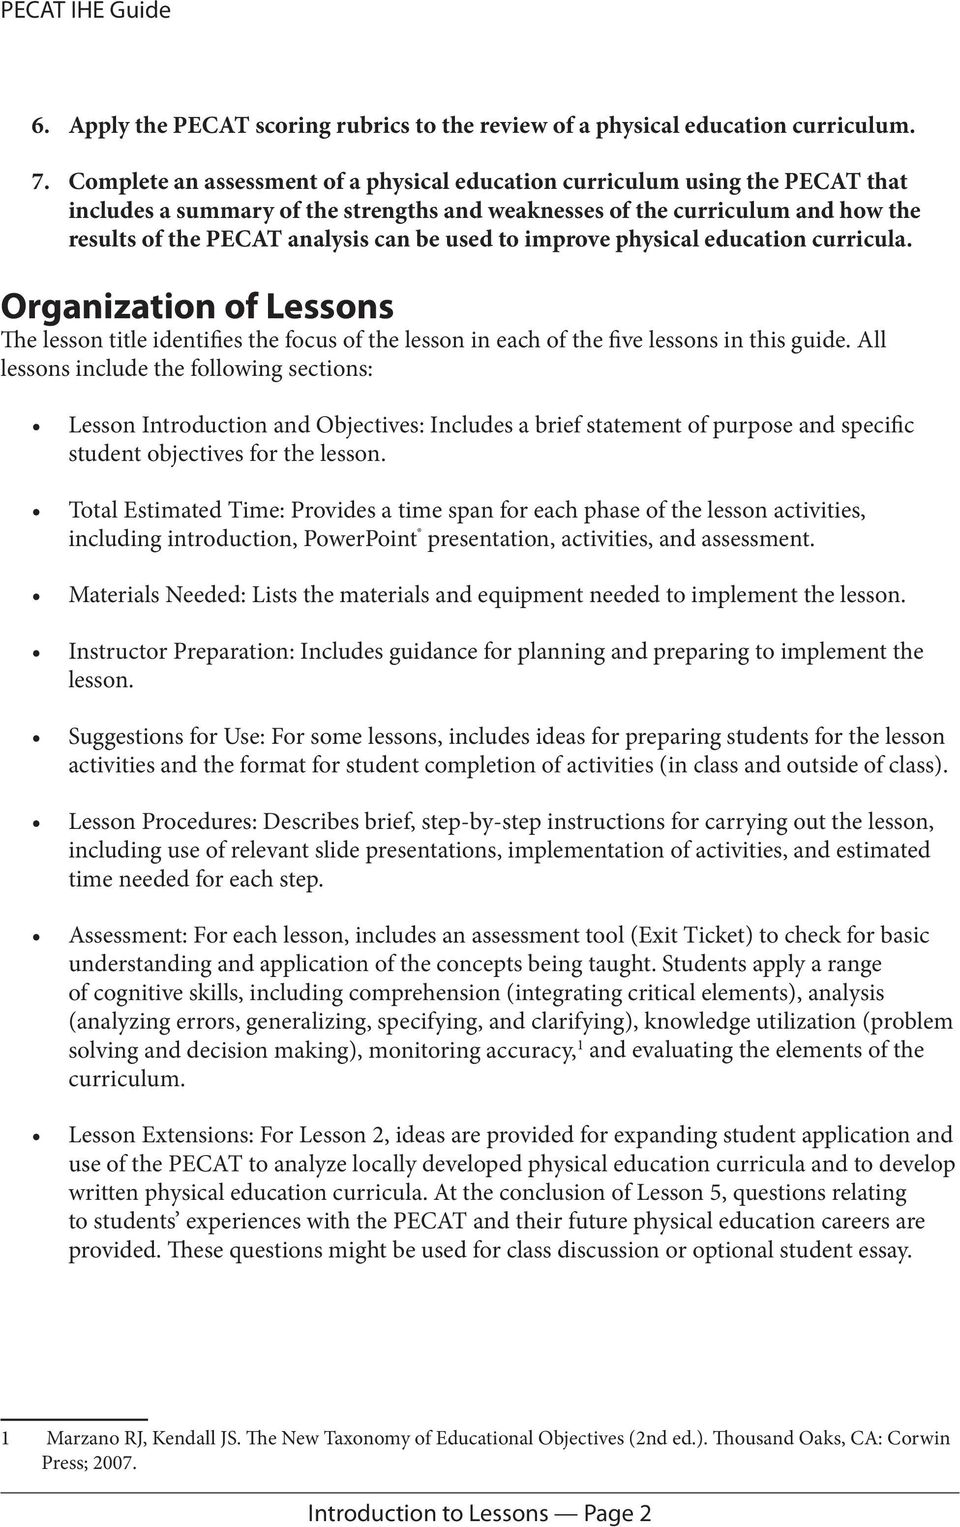 used to improve physical education curricula. Organization of Lessons The lesson title identifies the focus of the lesson in each of the five lessons in this guide.